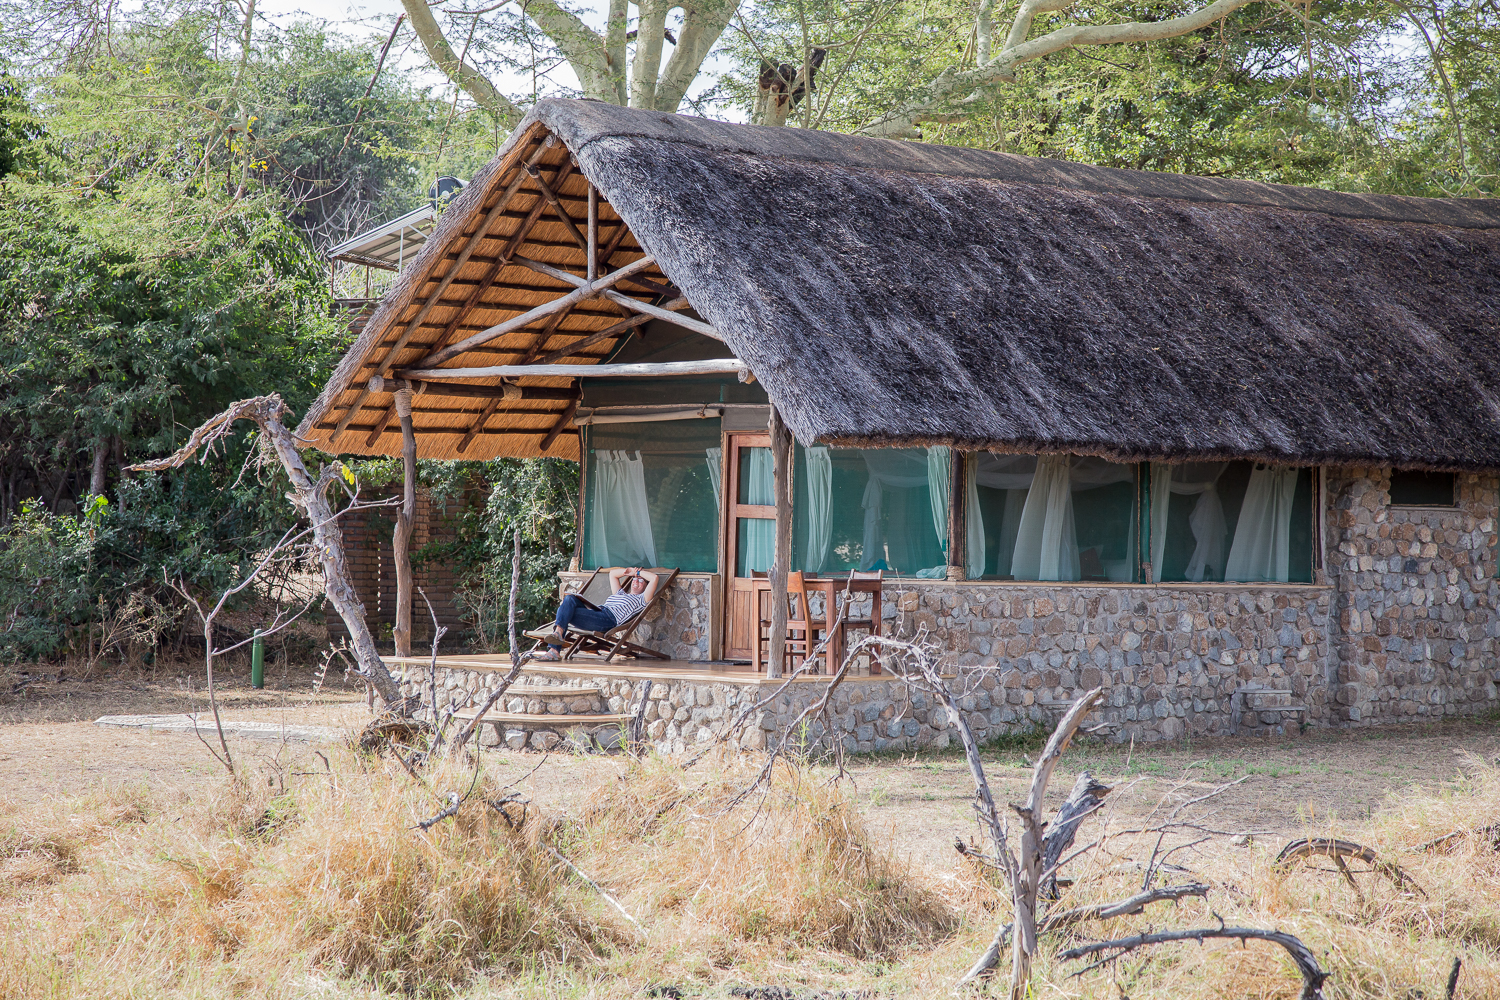 Our chalet at Mvuu Camp. We could watch the hippos eating grass in our front yard around midnight.